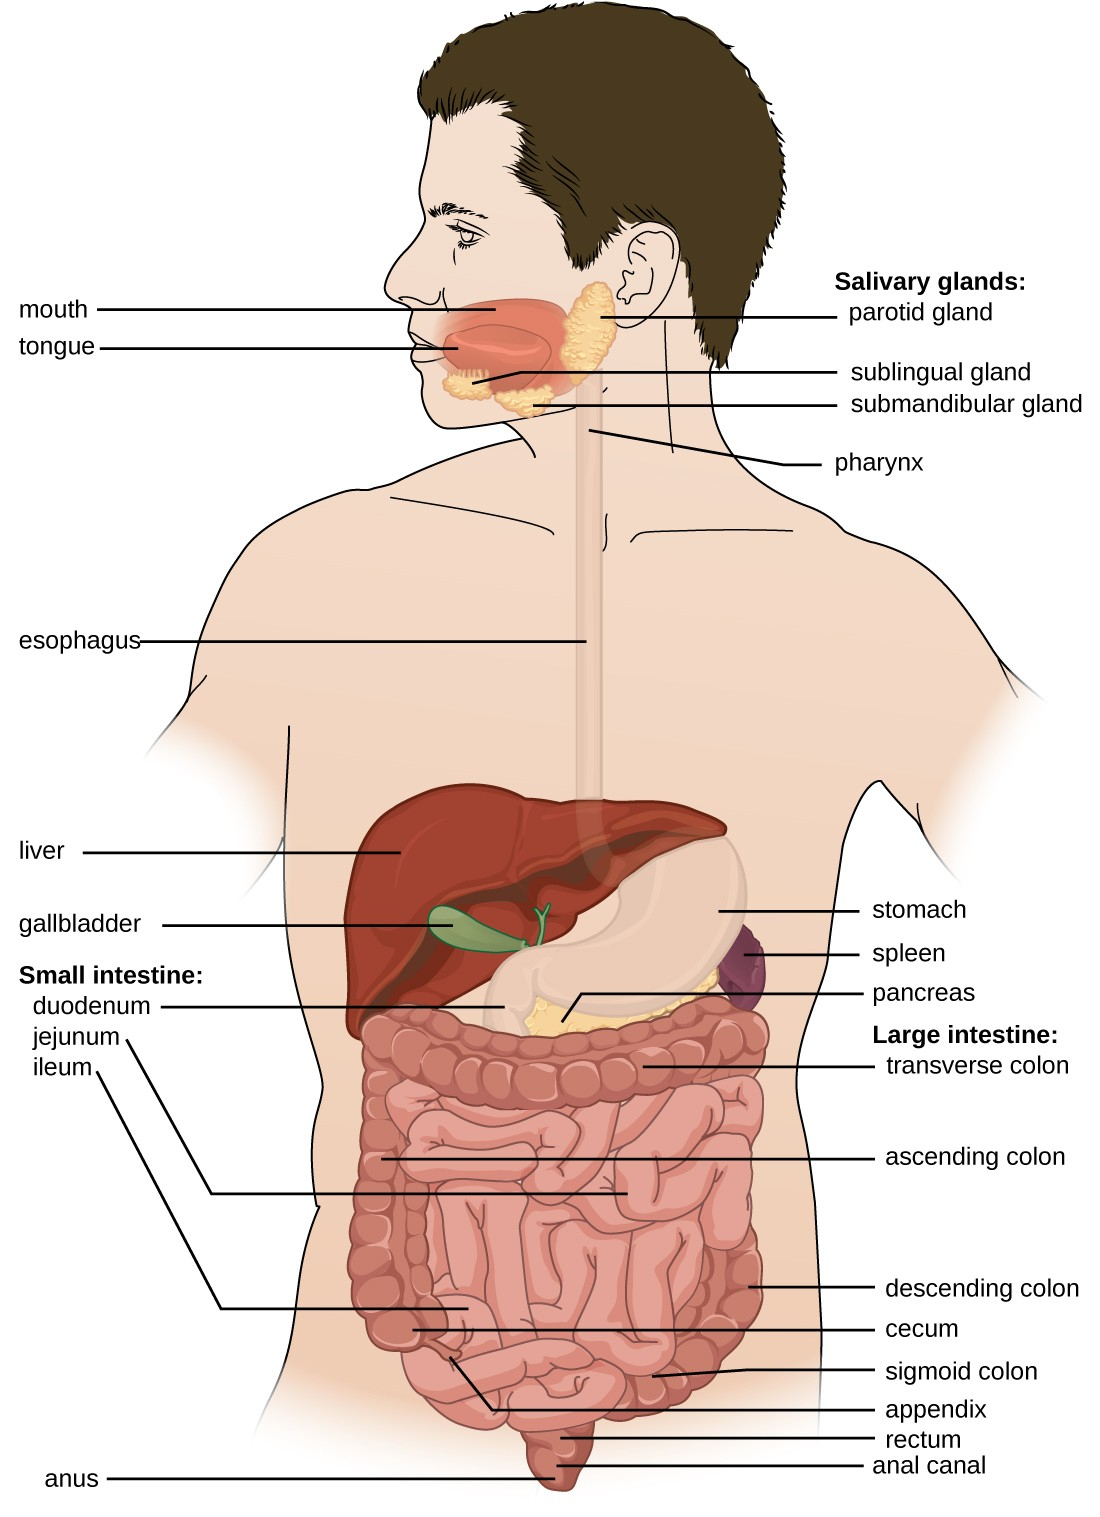 Diagram Of Digestive System Anatomy And Normal Microbiota Of The Digestive System Microbiology